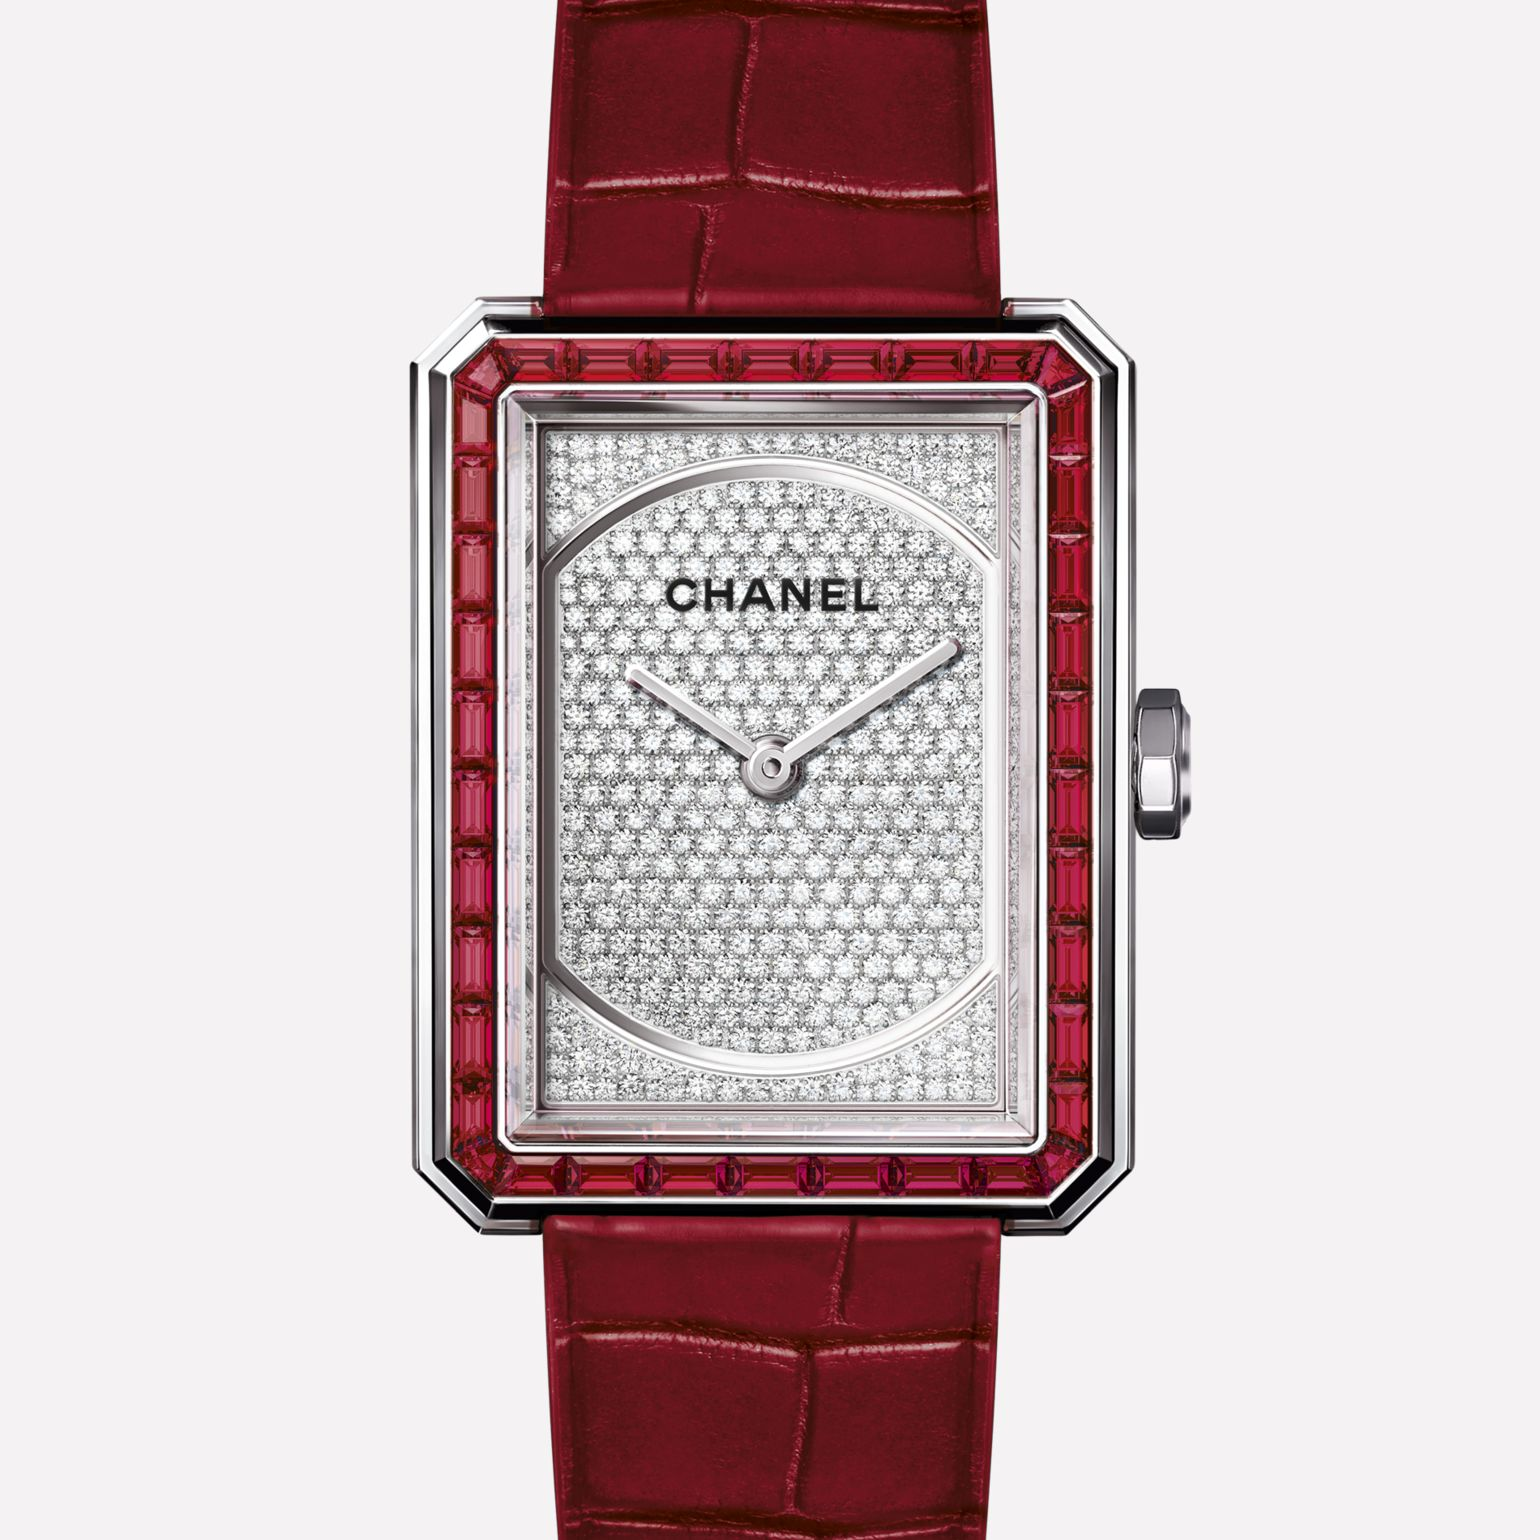 BOY·FRIEND RUBIS Watch Medium version, white gold set with rubies and alligator strap